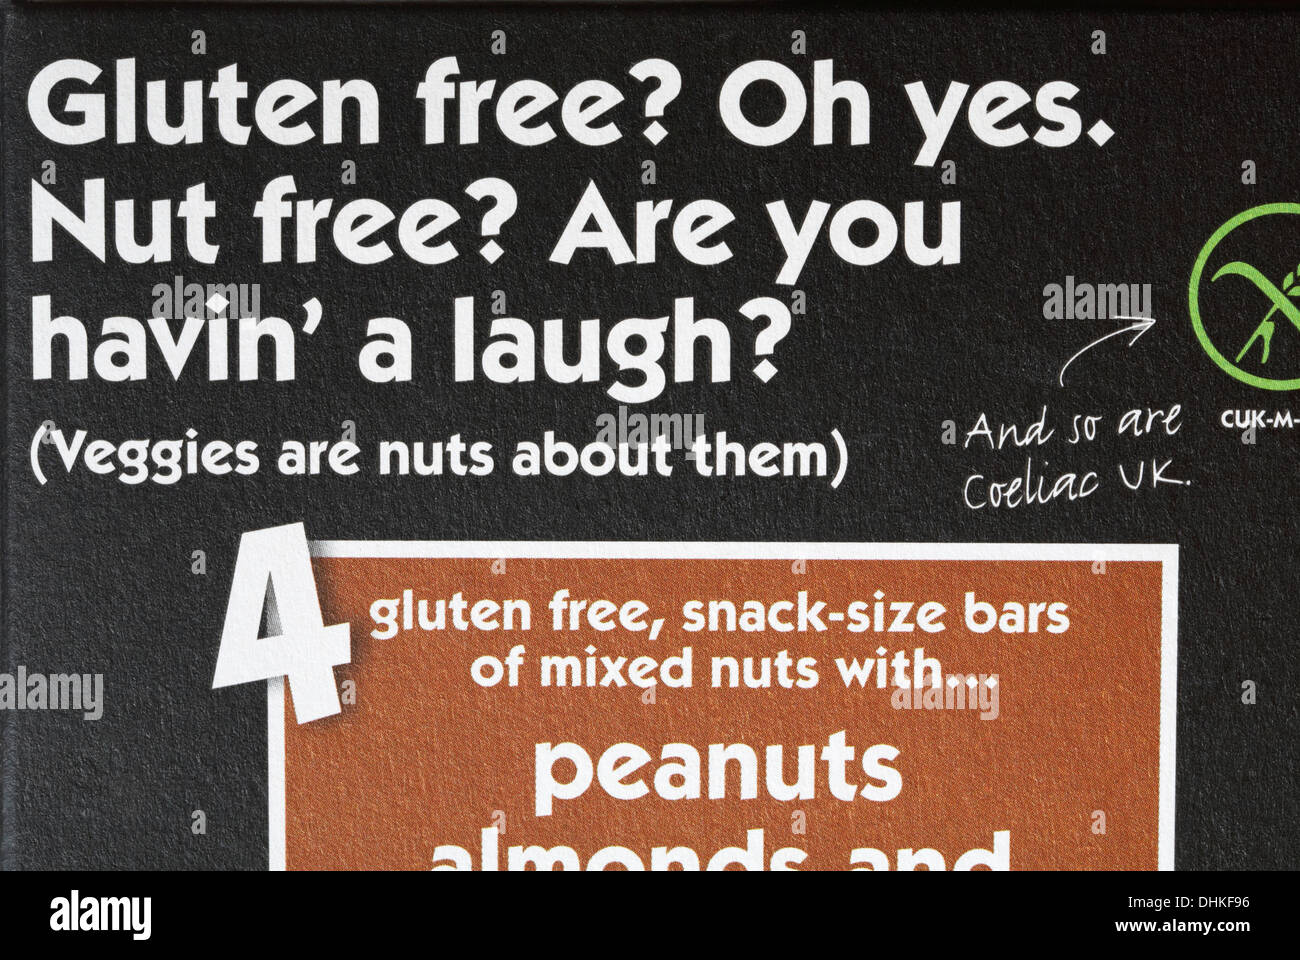 Gluten free? Oh Yes Nut Free? Are you havin' a laugh? information on packet of Eat Natural peanuts almonds and hazelnuts - veggies are nuts about them - Stock Image